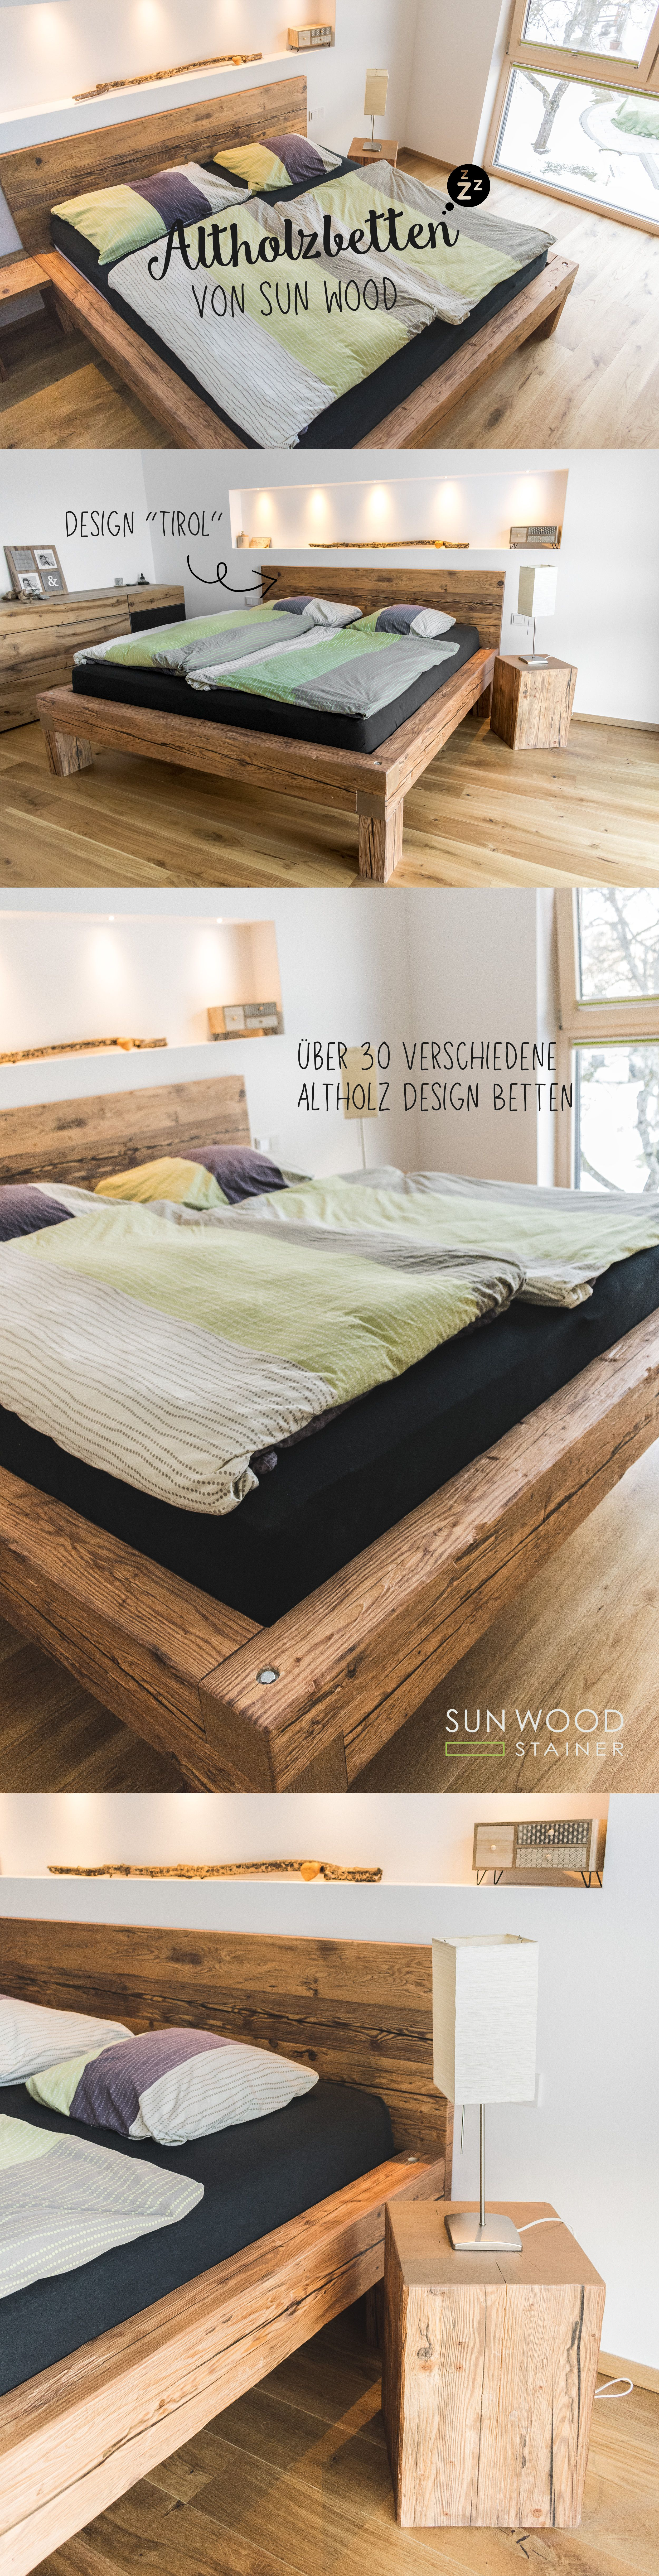 Schlafzimmer Design Betten Balkenbett Altholzdesign Tirol 02 Столярная In 2019